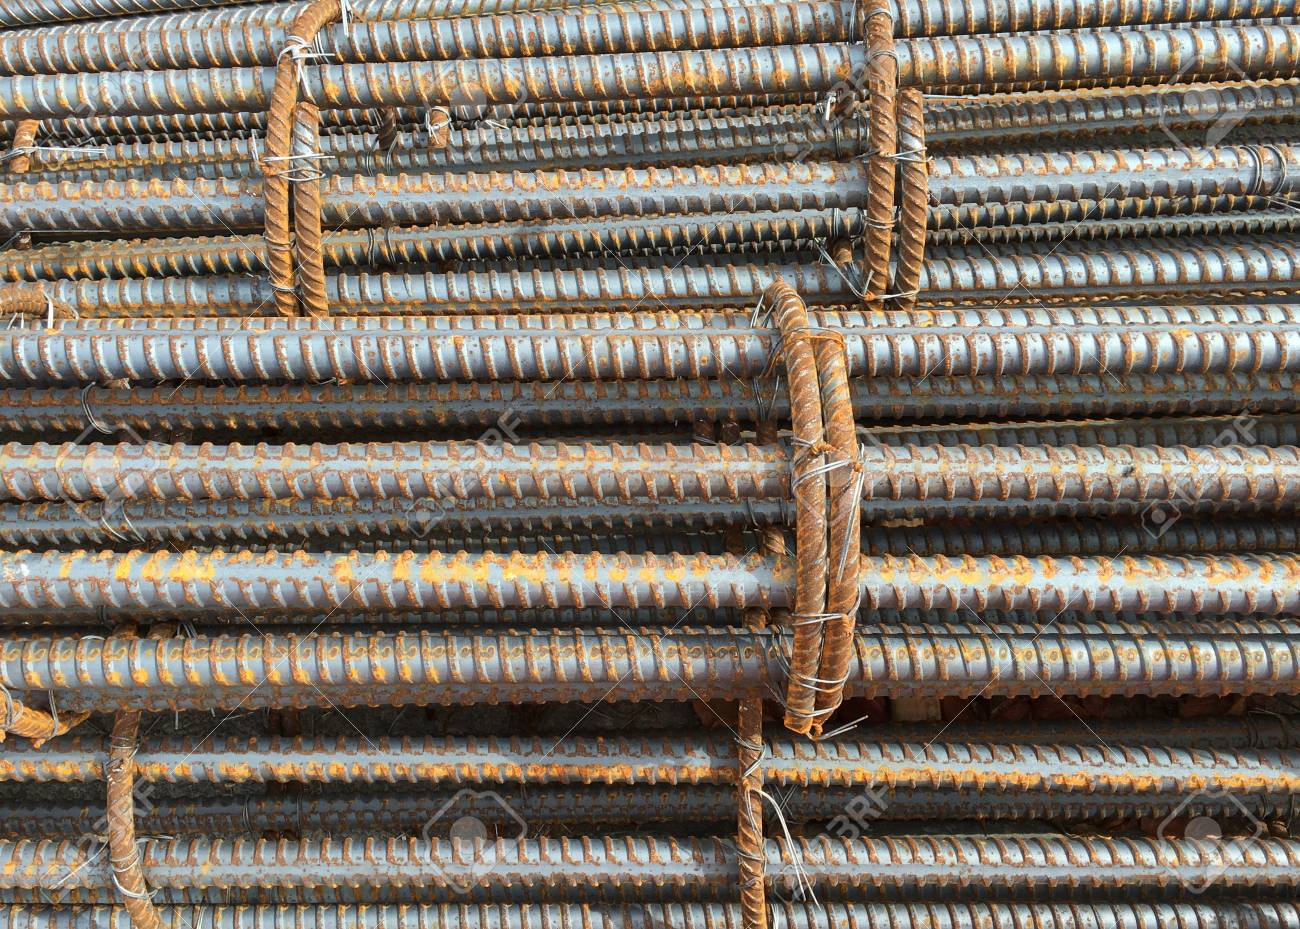 Close-up photo of a rebar, reinforcing bar, reinforcing steel and reinforcement steel, a steel bar or mesh of steel wires used as a tension device in reinforced concrete and masonry structures. - 106216086